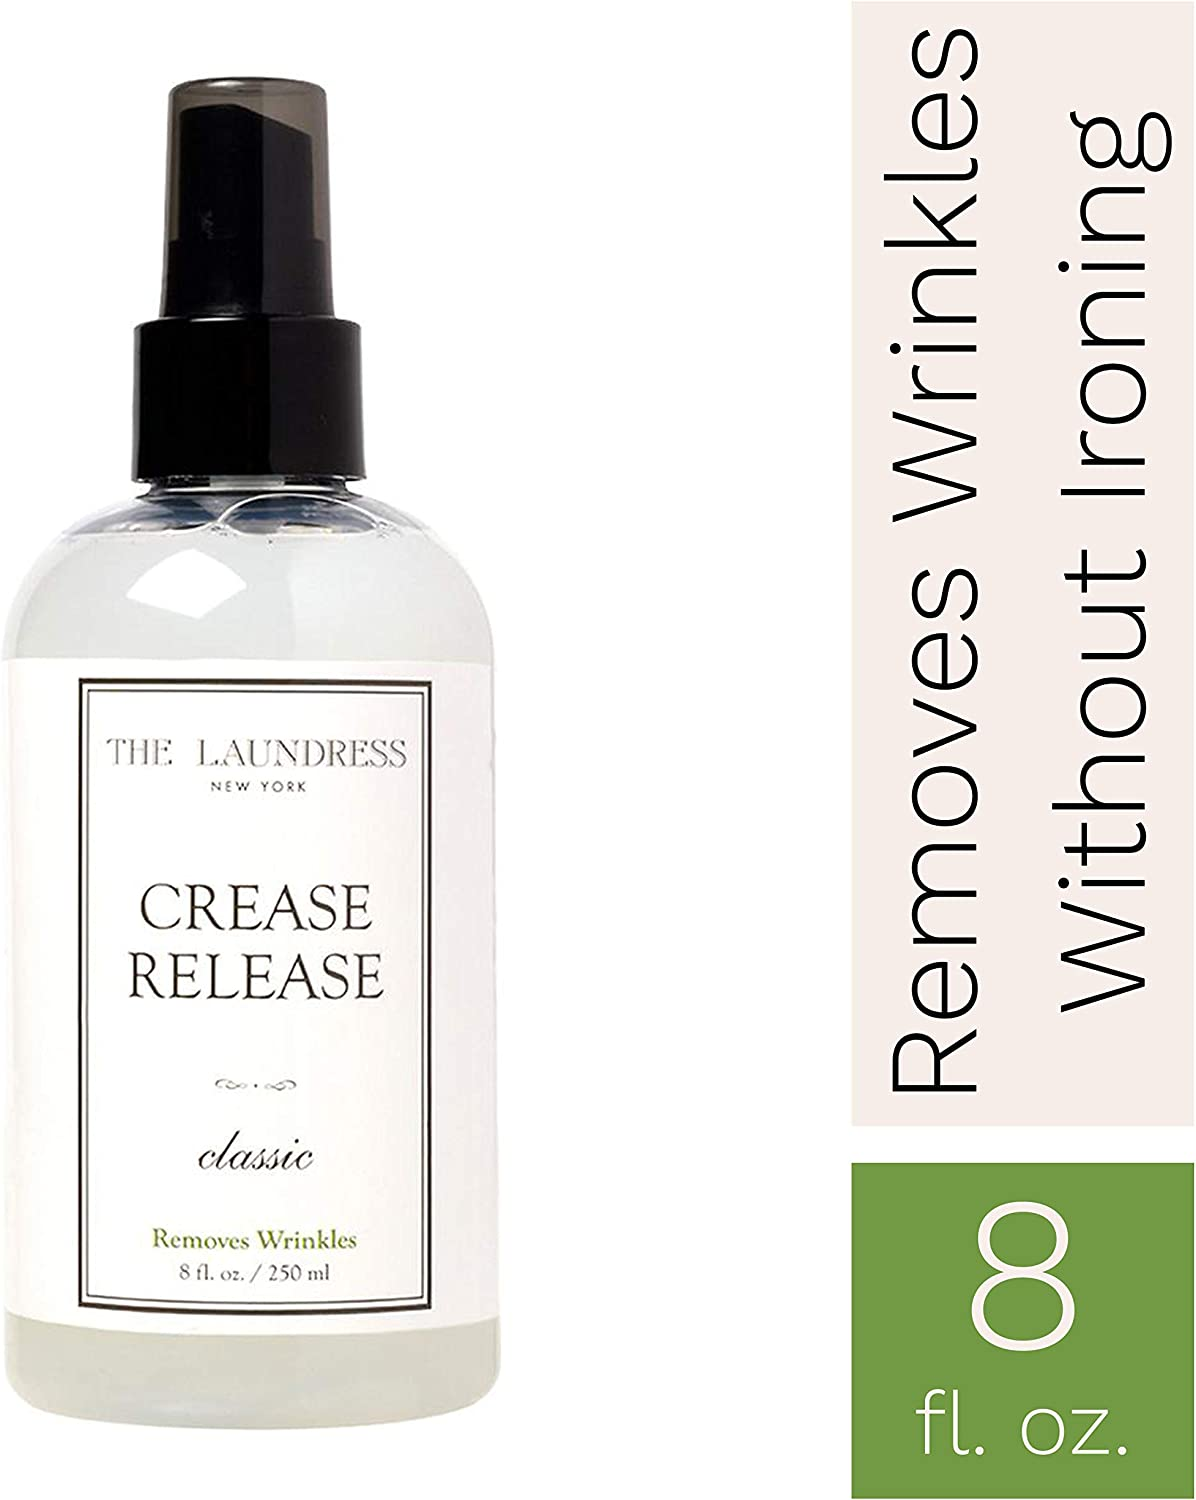 The Laundress - Crease Release, Classic Scented, Wrinkle Release Spray, Shirts, Suits, Curtains & More, Anti Wrinkle Spray for Clothes, Wrinkle Remover Spray, 8 fl oz